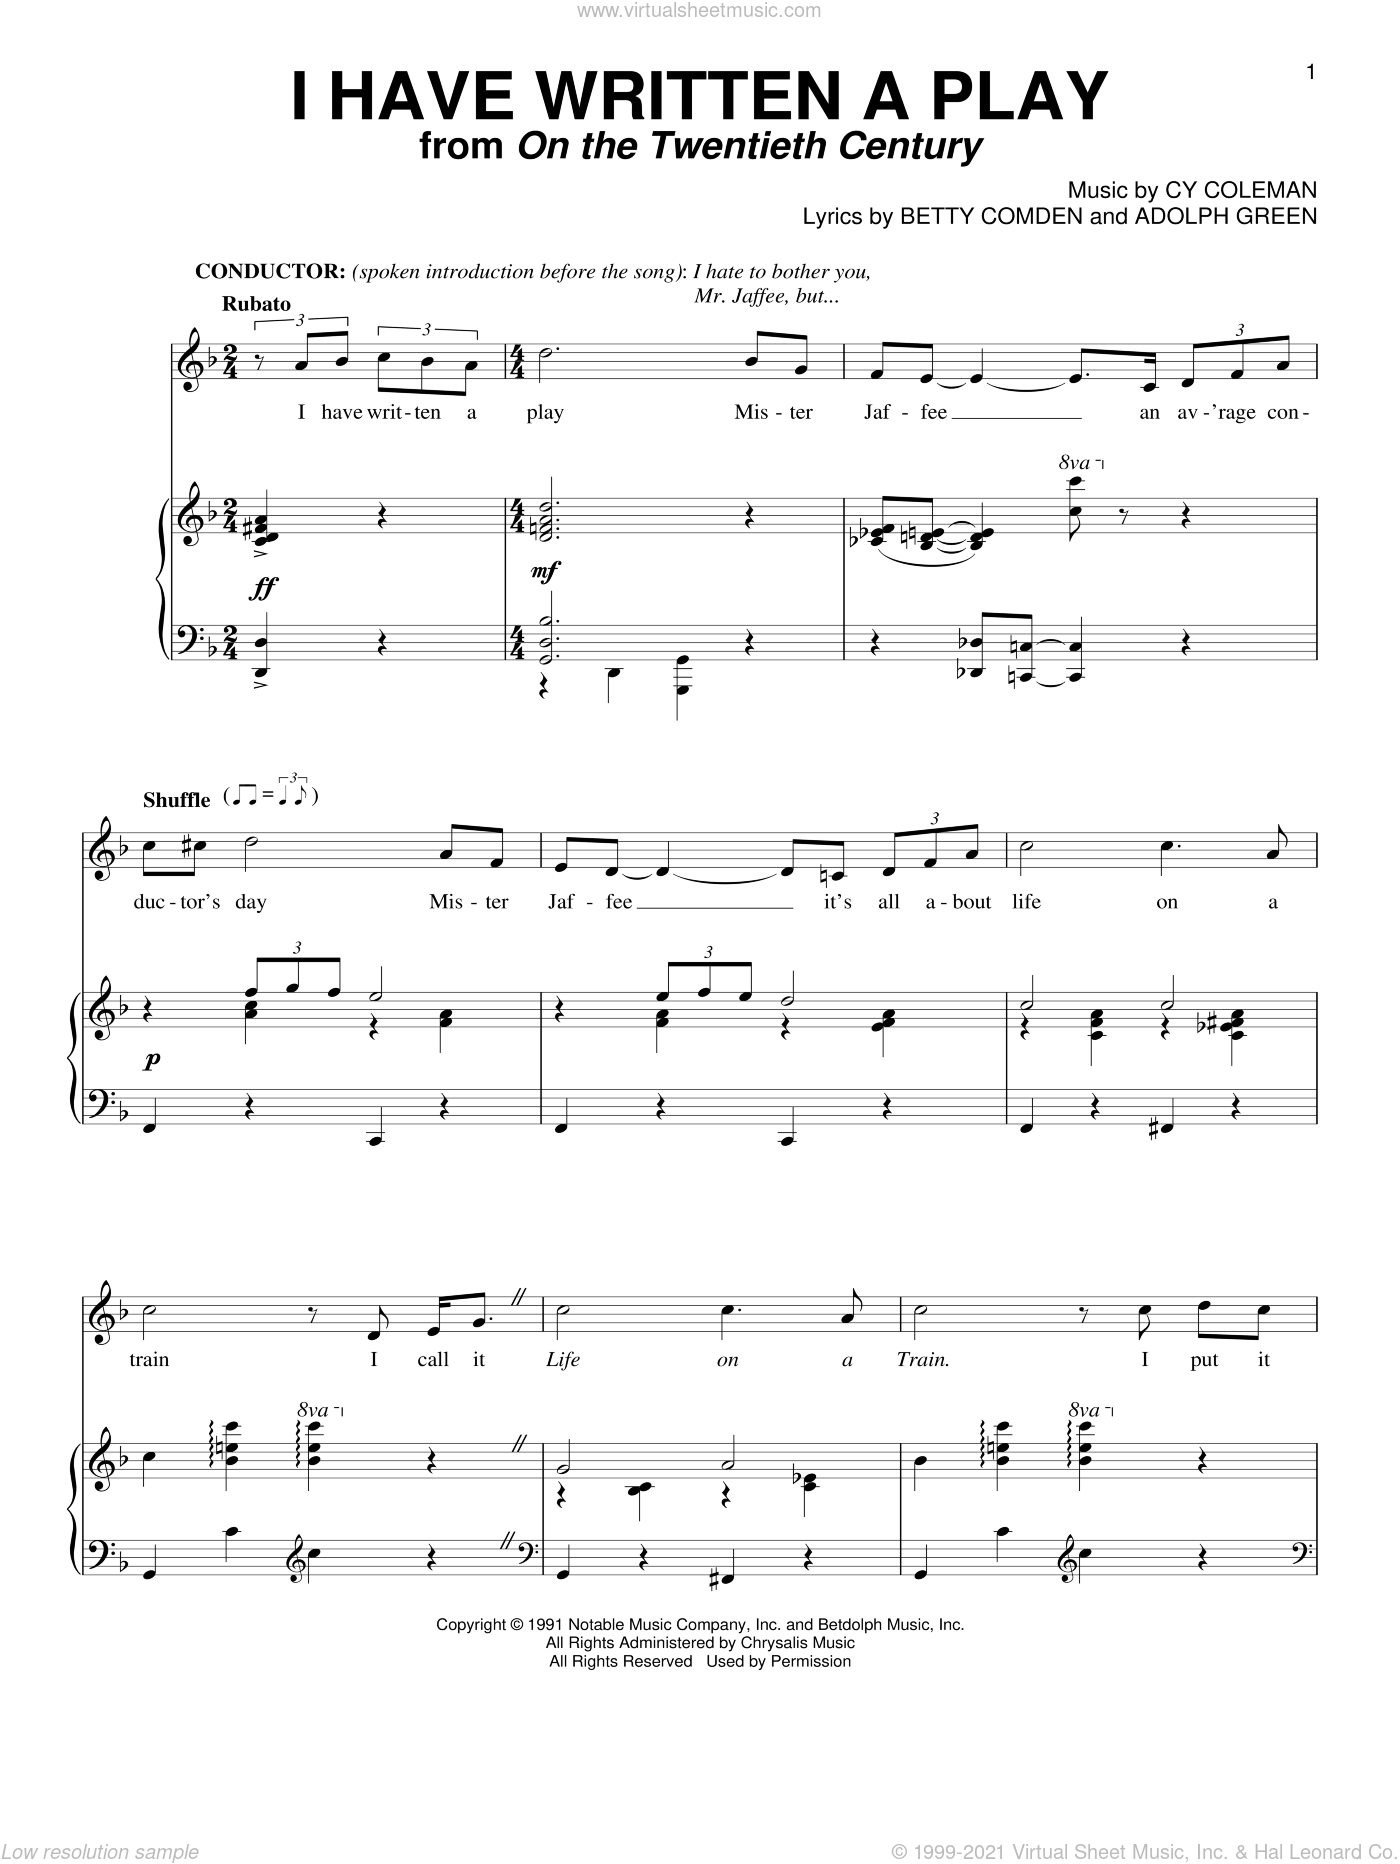 I Have Written A Play sheet music for voice and piano by Cy Coleman, Adolph Green and Betty Comden, intermediate skill level